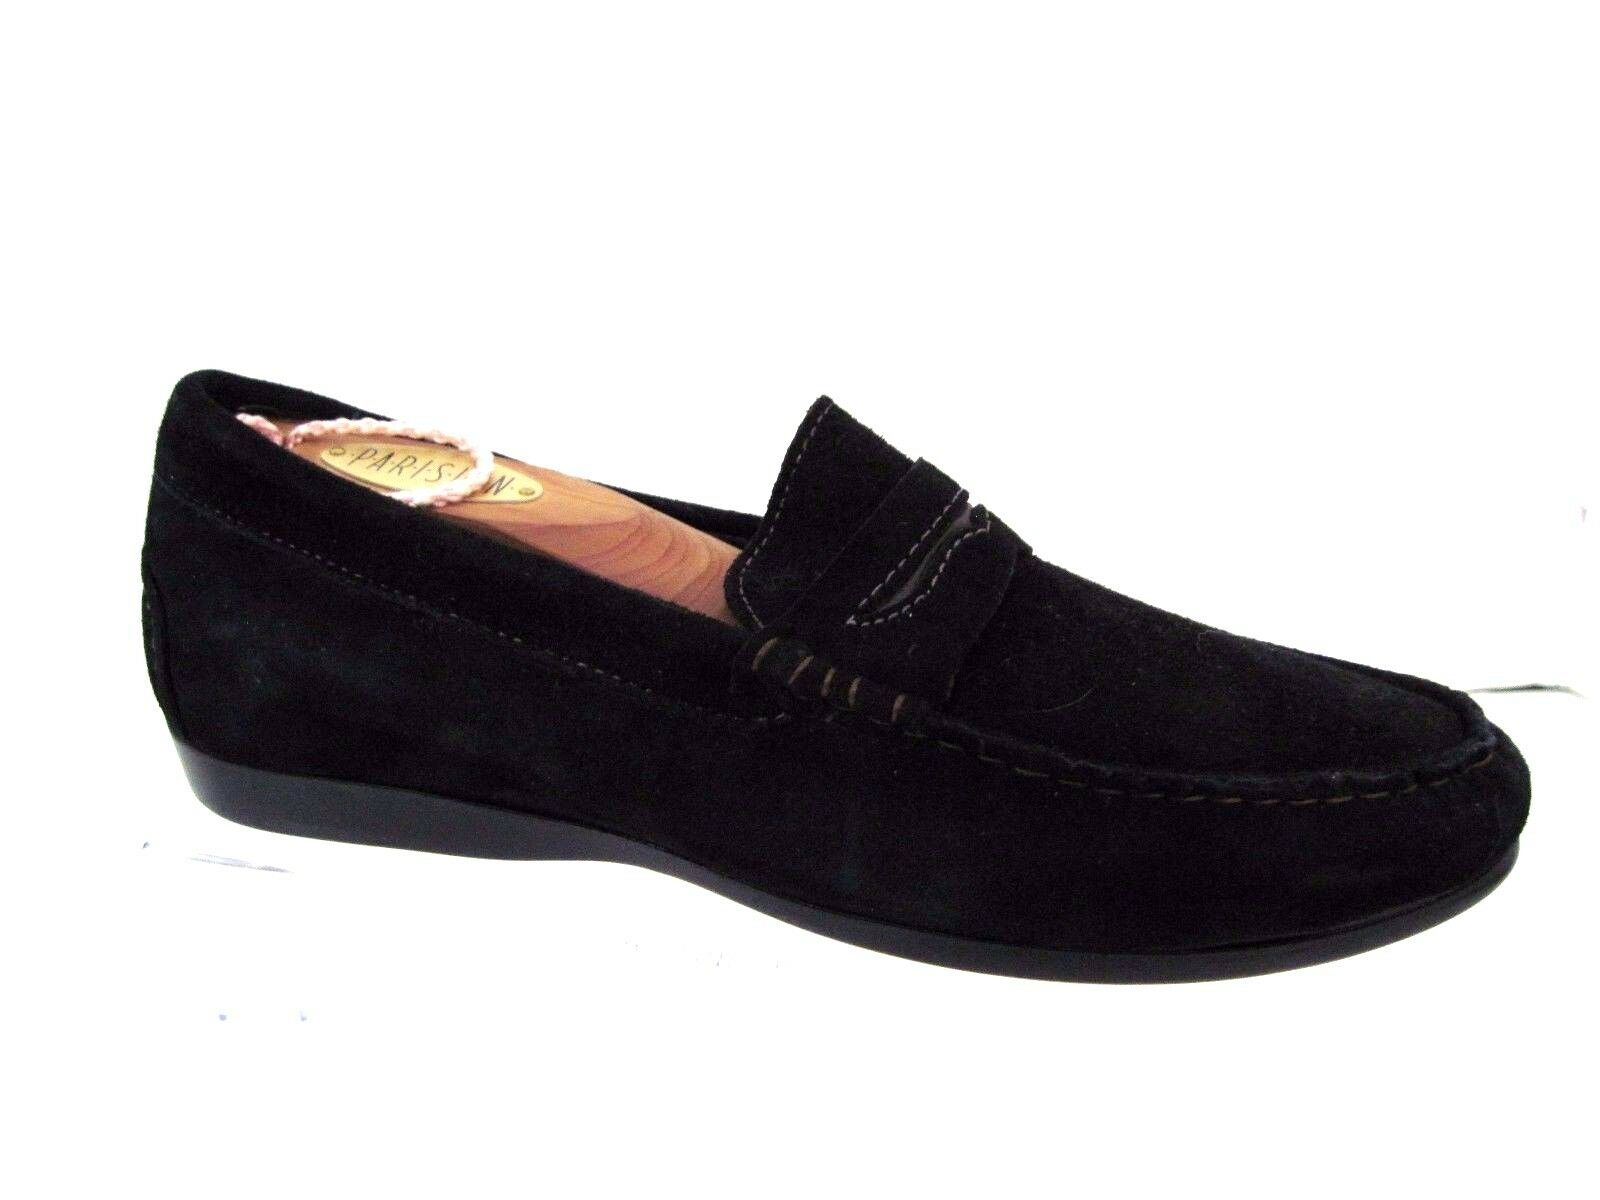 MUNRO American Black Suede Penny Style Loafers Size 6W USA